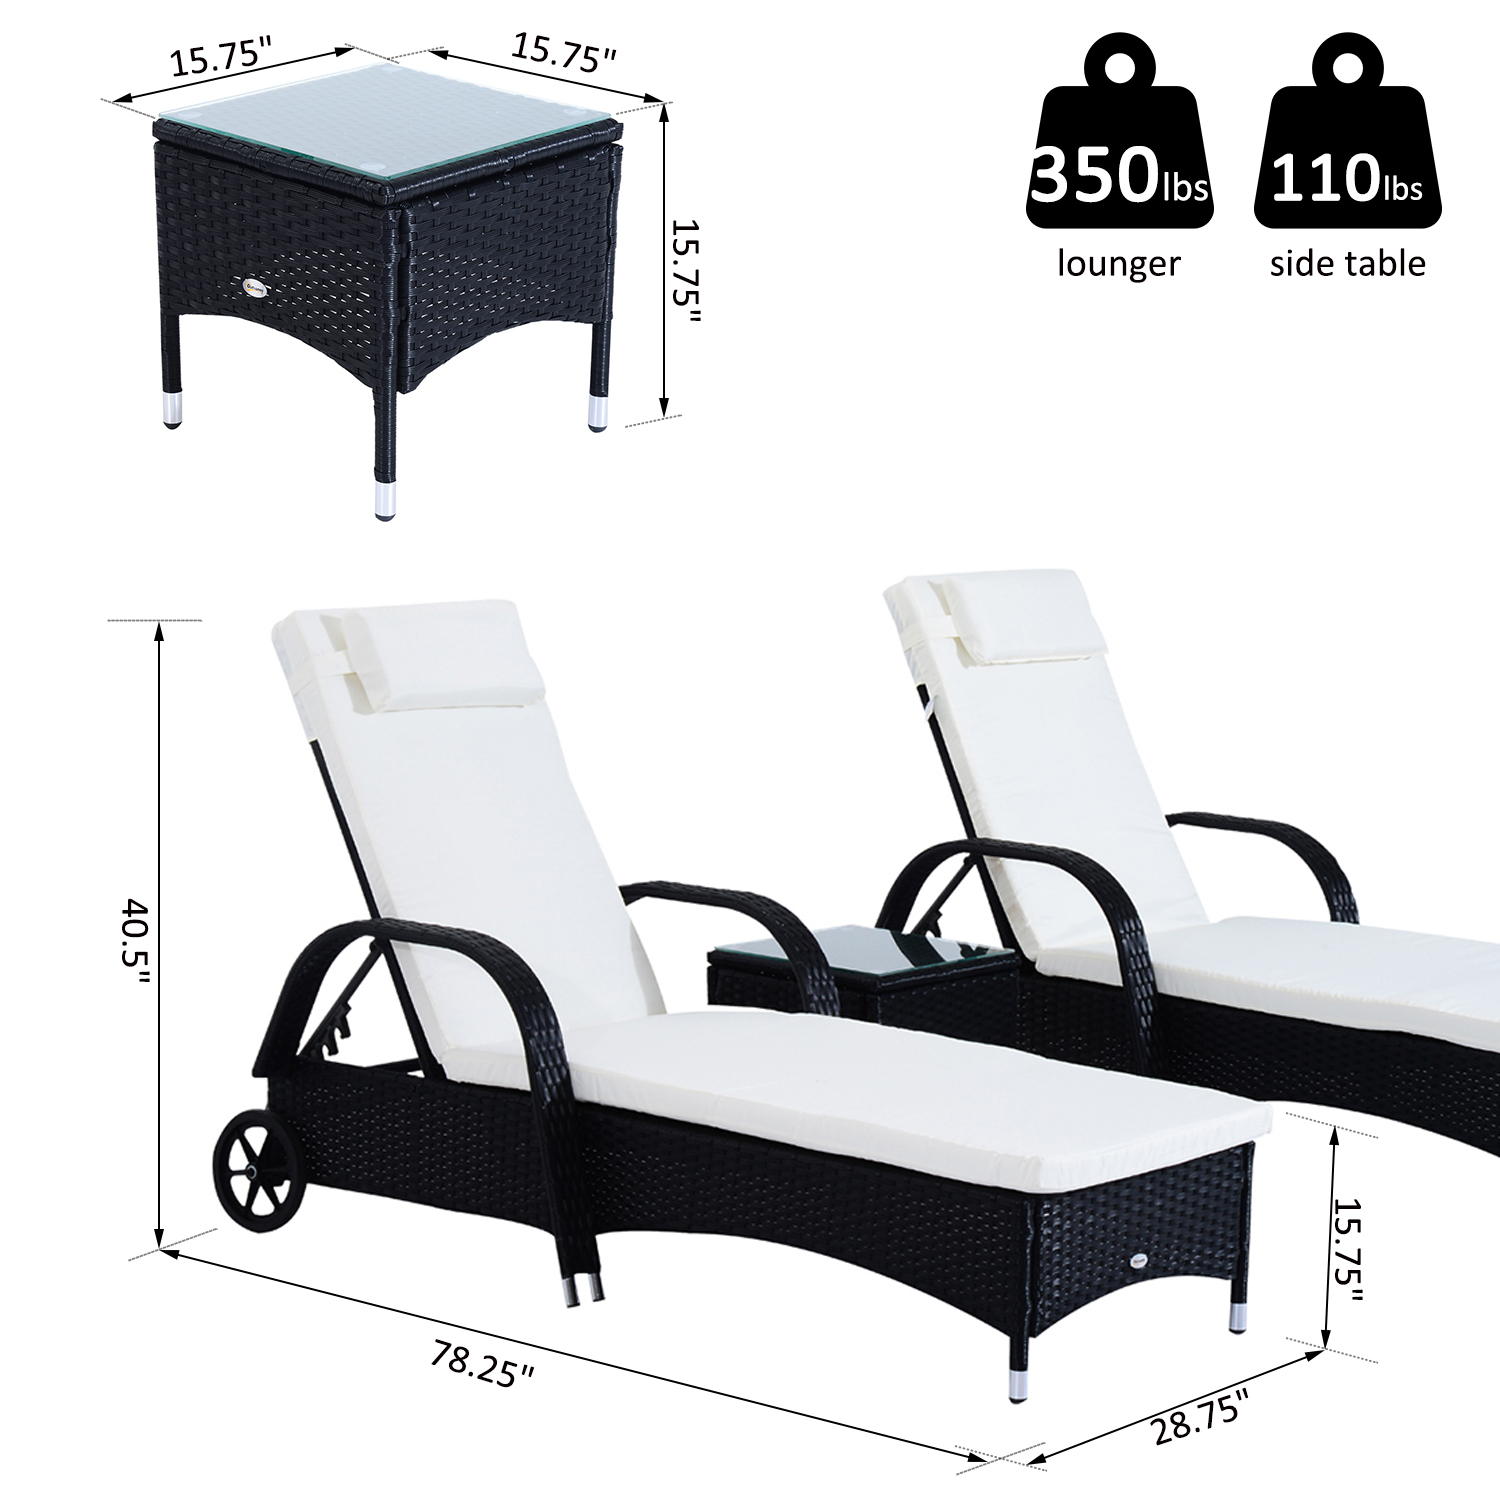 3pcs-Wheeled-Patio-Rattan-Lounge-Set-Adjustable-Reclining-Chaise-w-Side-Table thumbnail 3